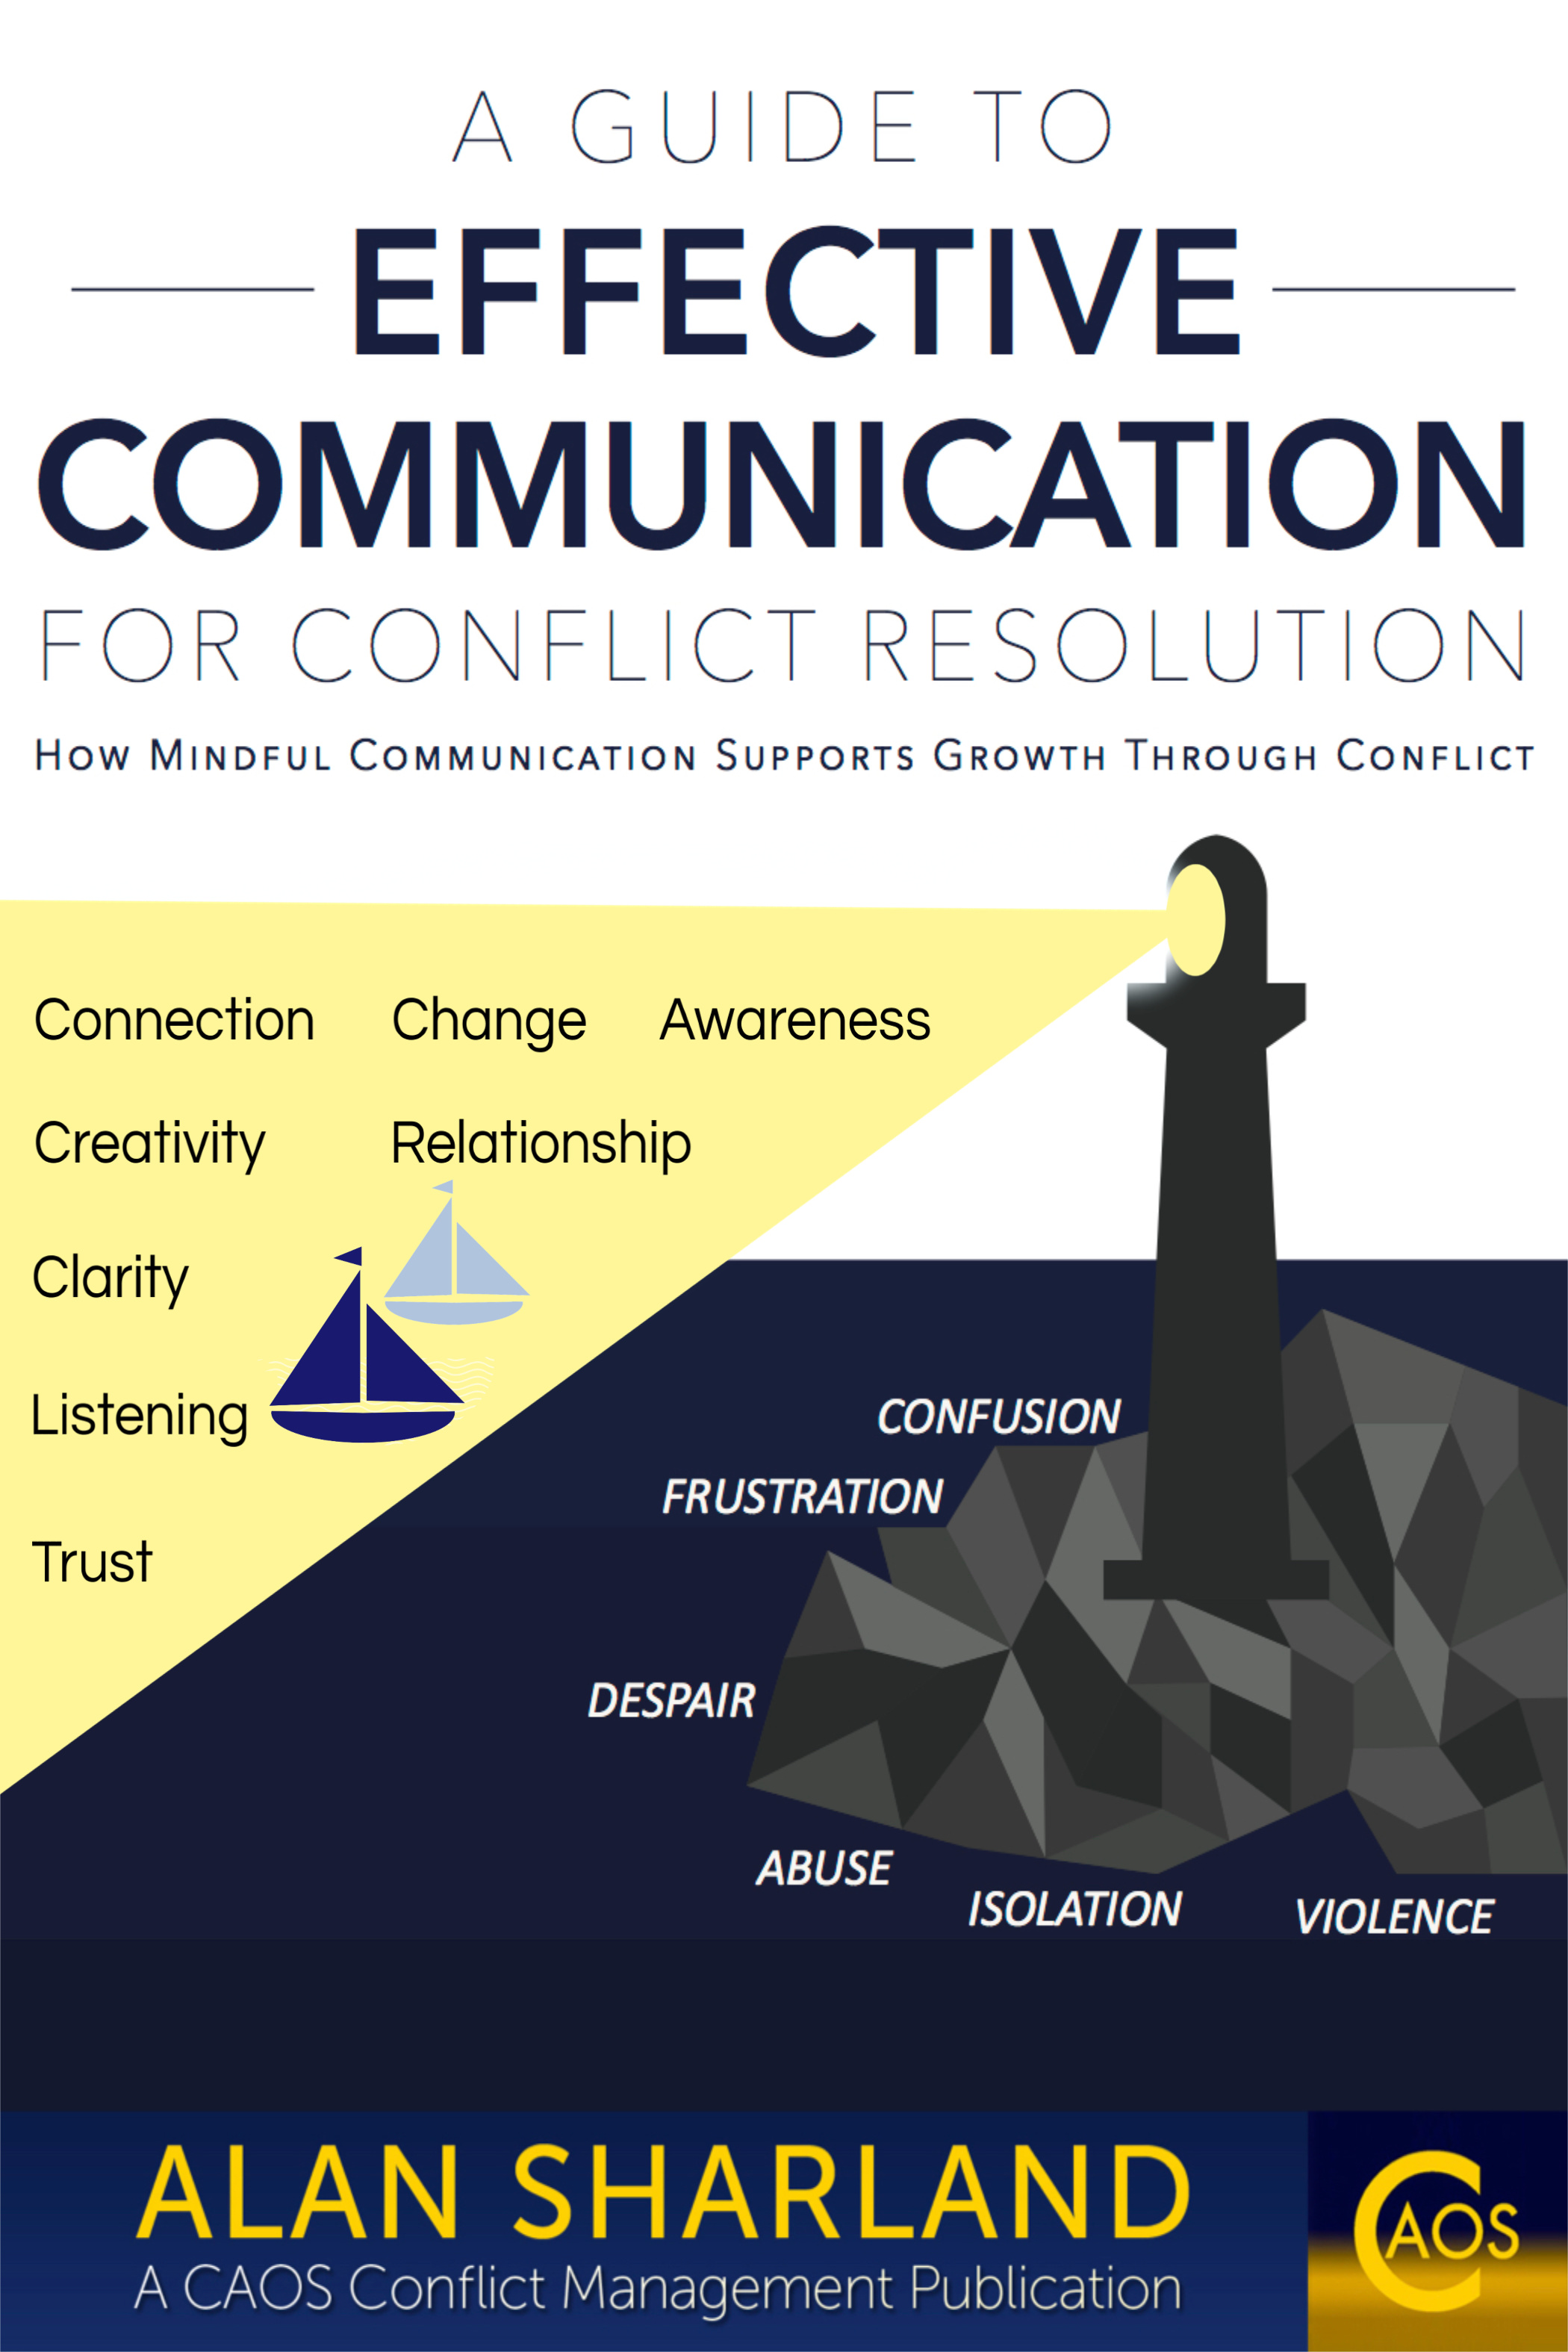 A Guide to Effective Communication for Conflict Resolution